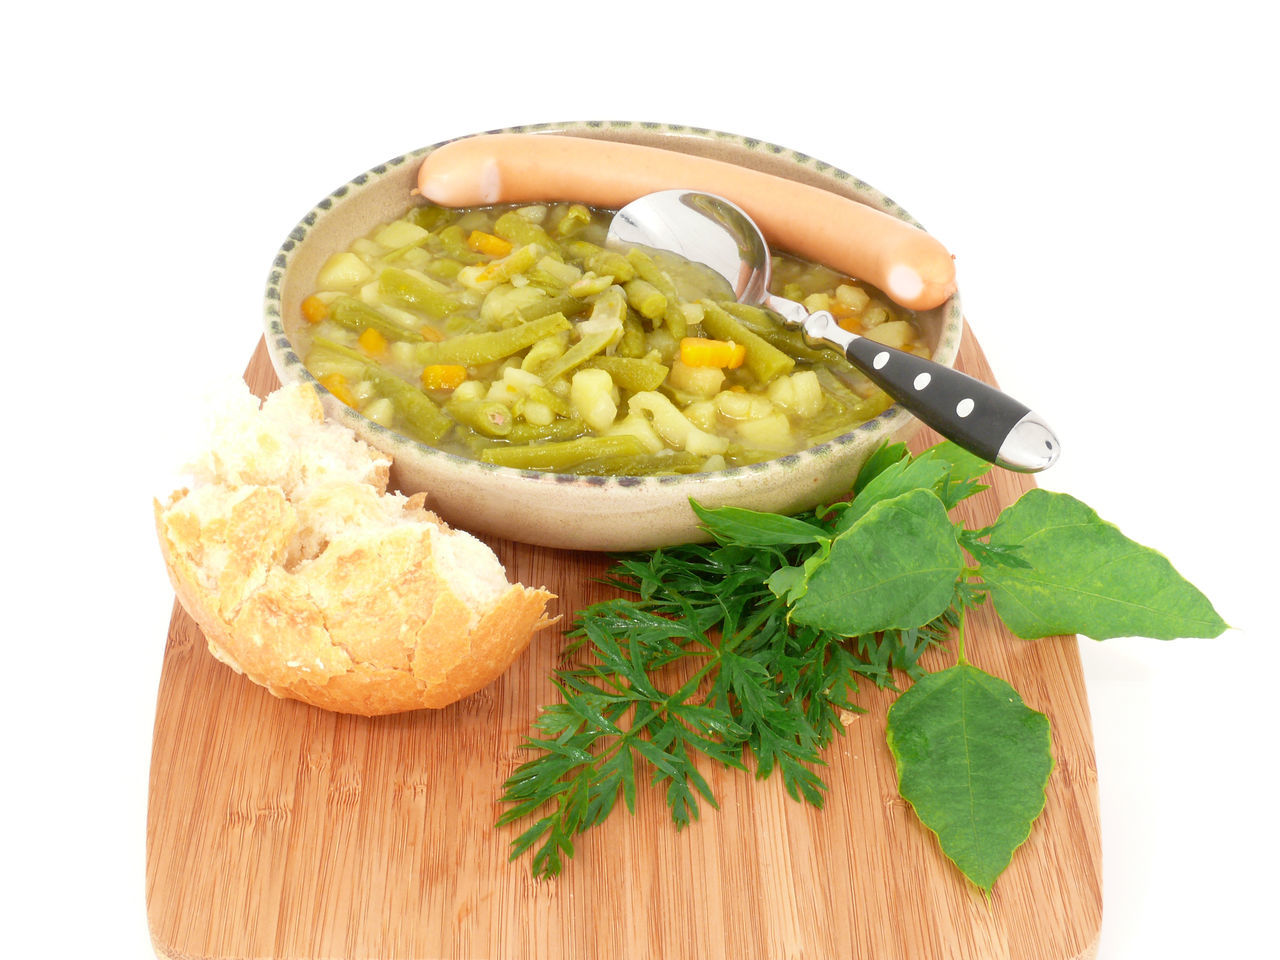 Beans Beansoup Bohneneintopf Bohnensuppe Food Food And Drink Freshness Green Color Hausmacher Healthy Eating Leaf No People Suppe White Background Yellow